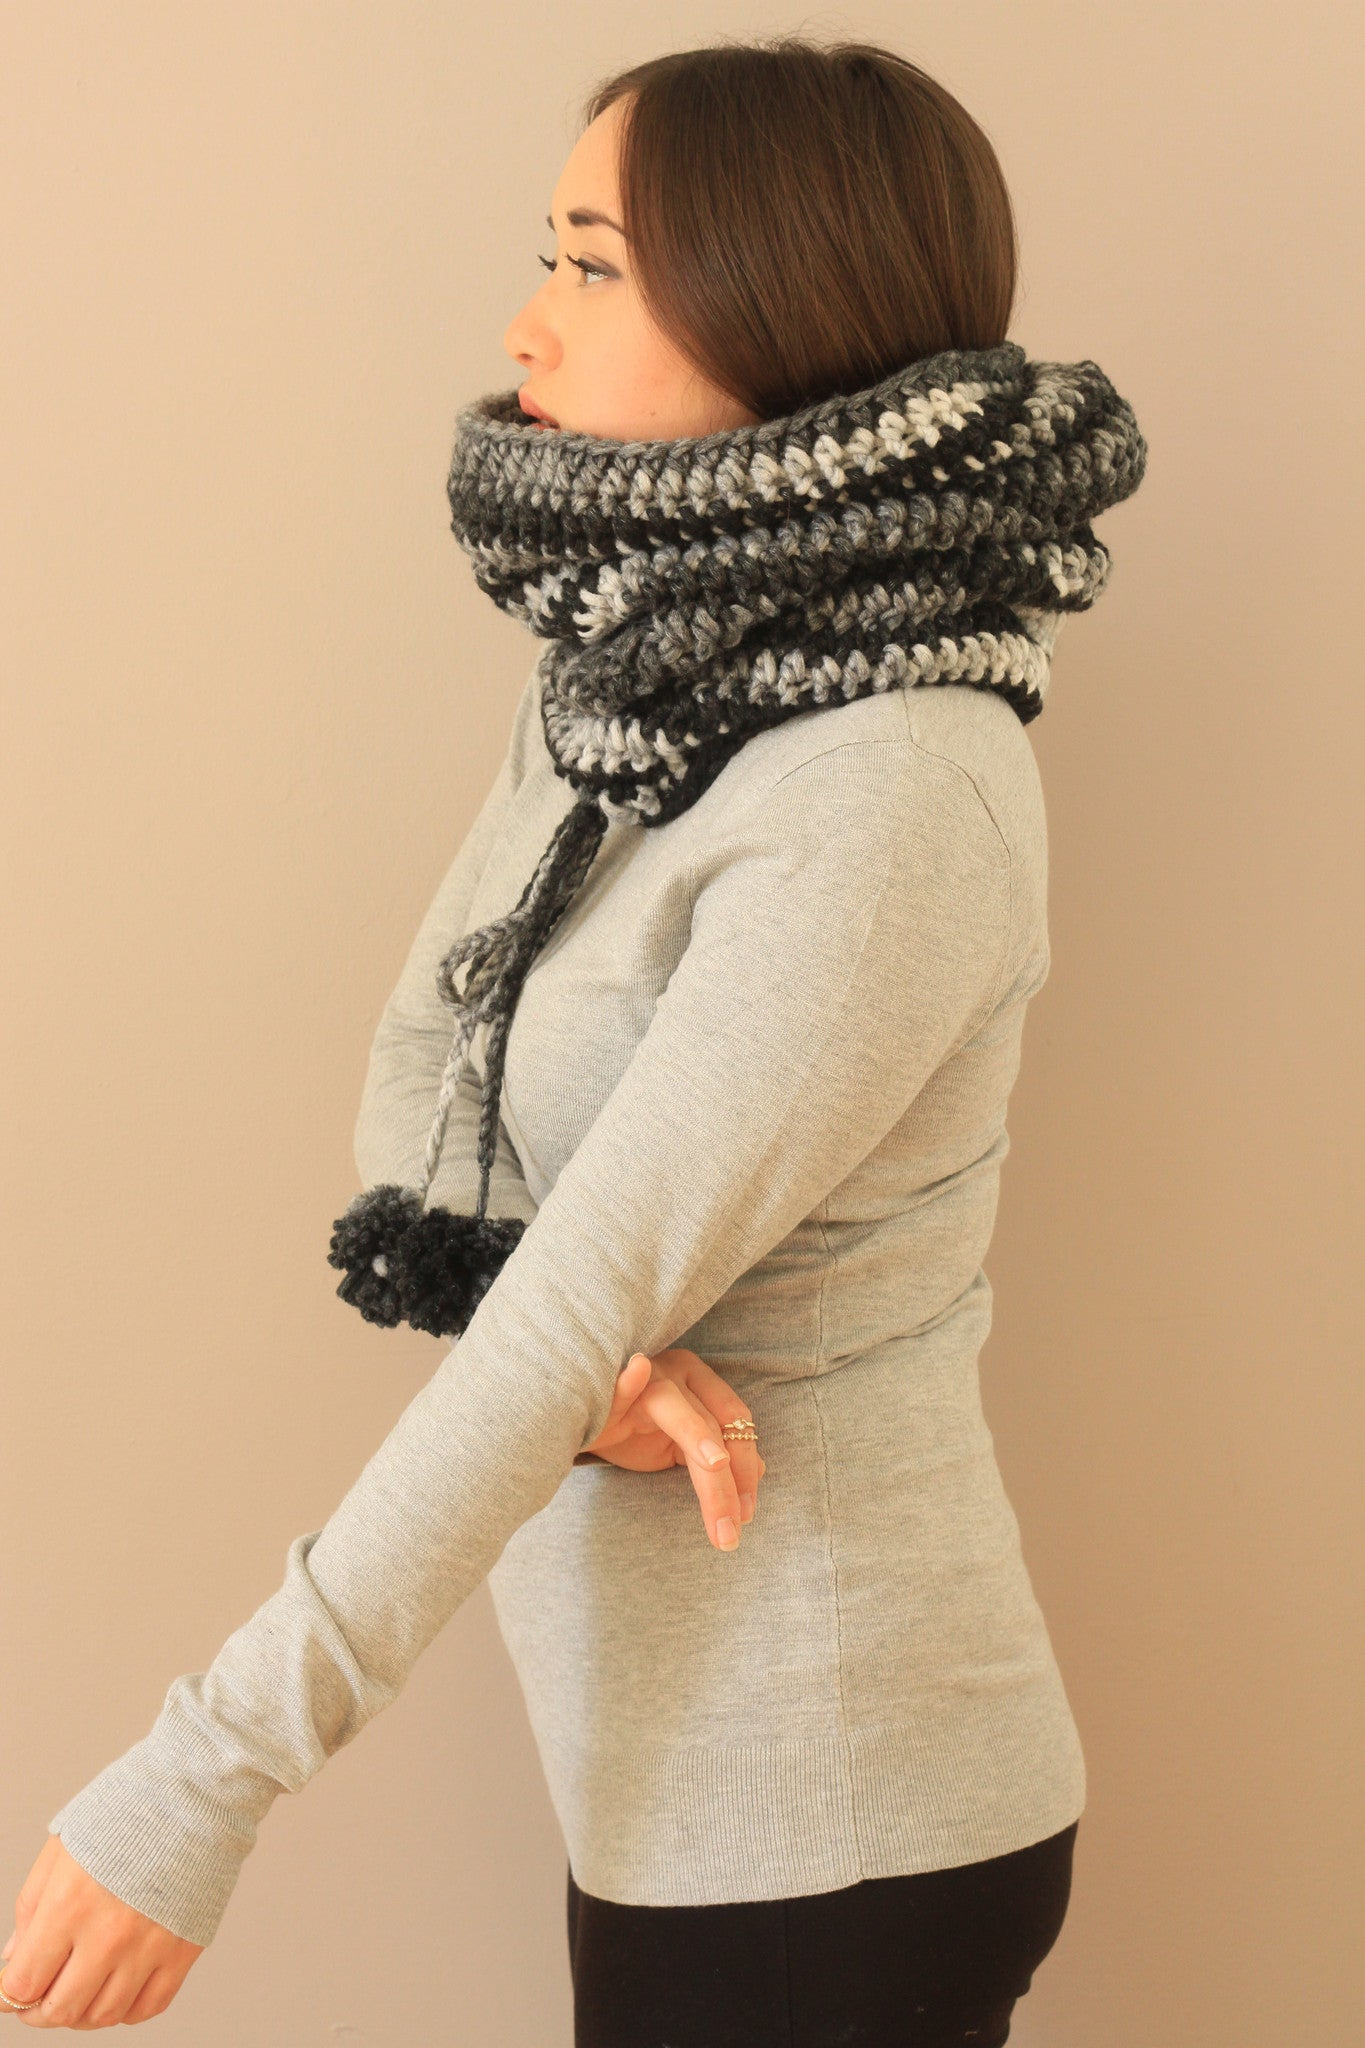 scarf warm cowl fun winter fashion trendy